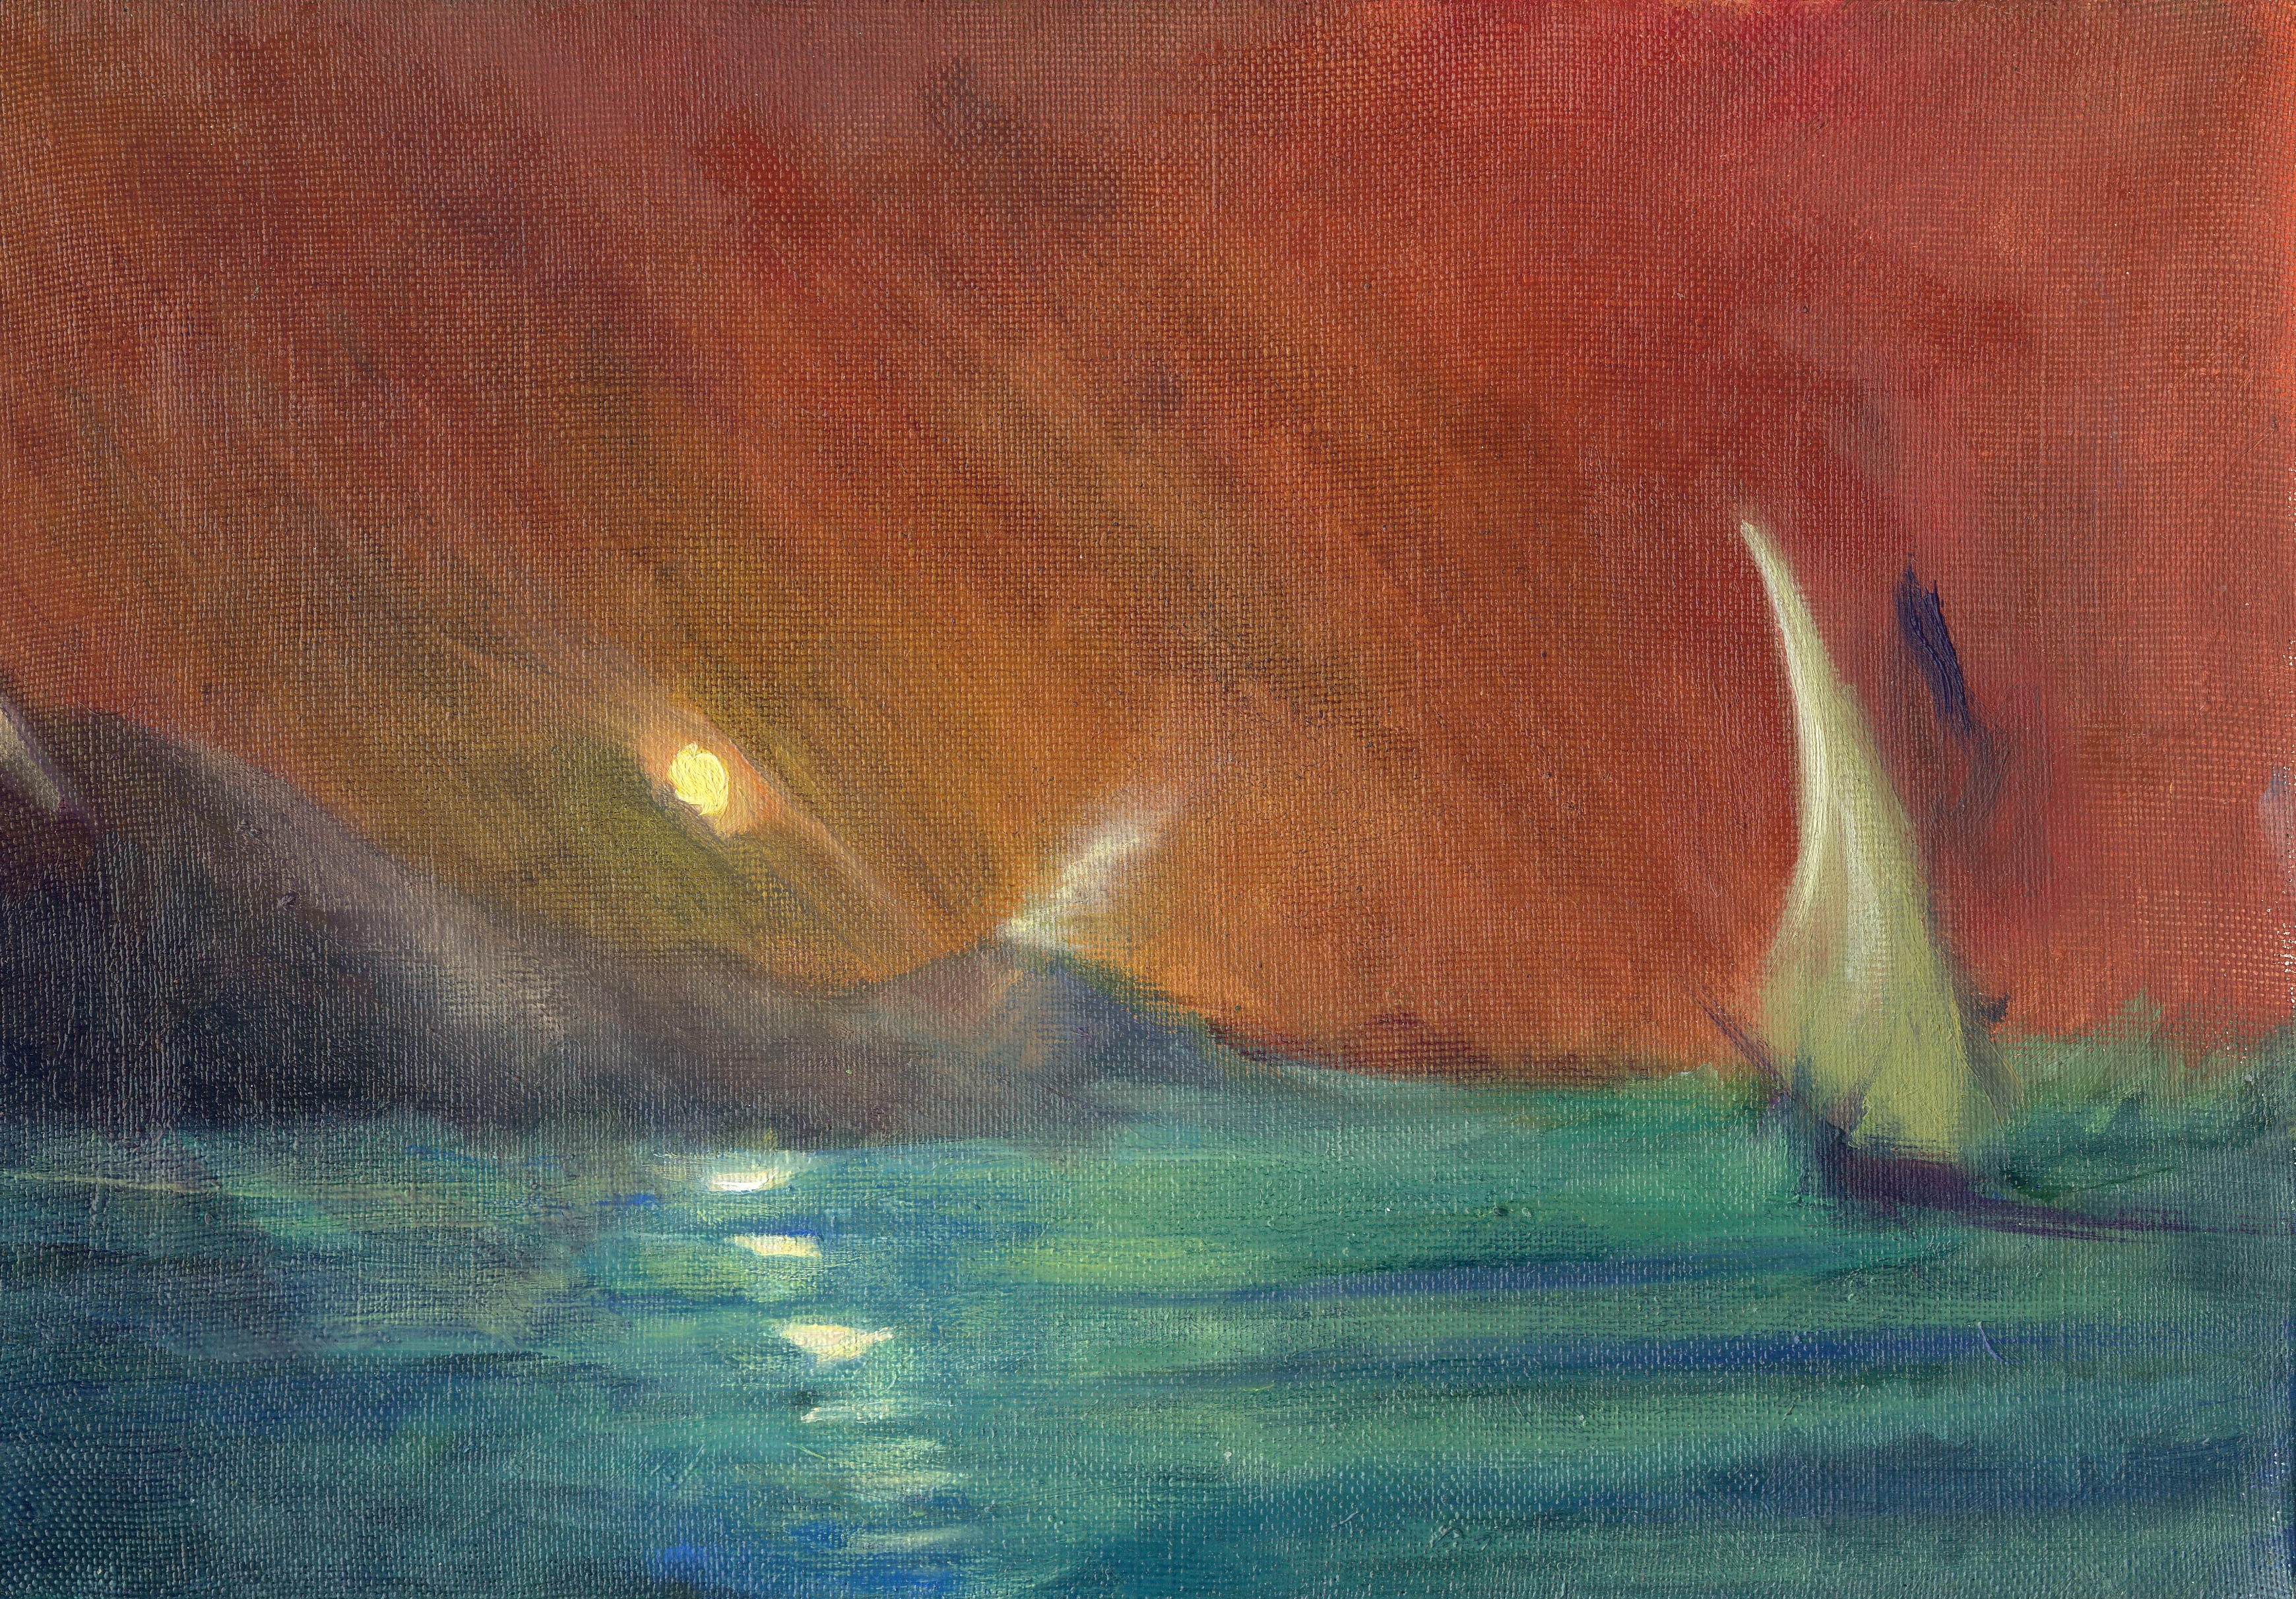 Sea Sunset 21x30 cm, oil on canvas, 2013